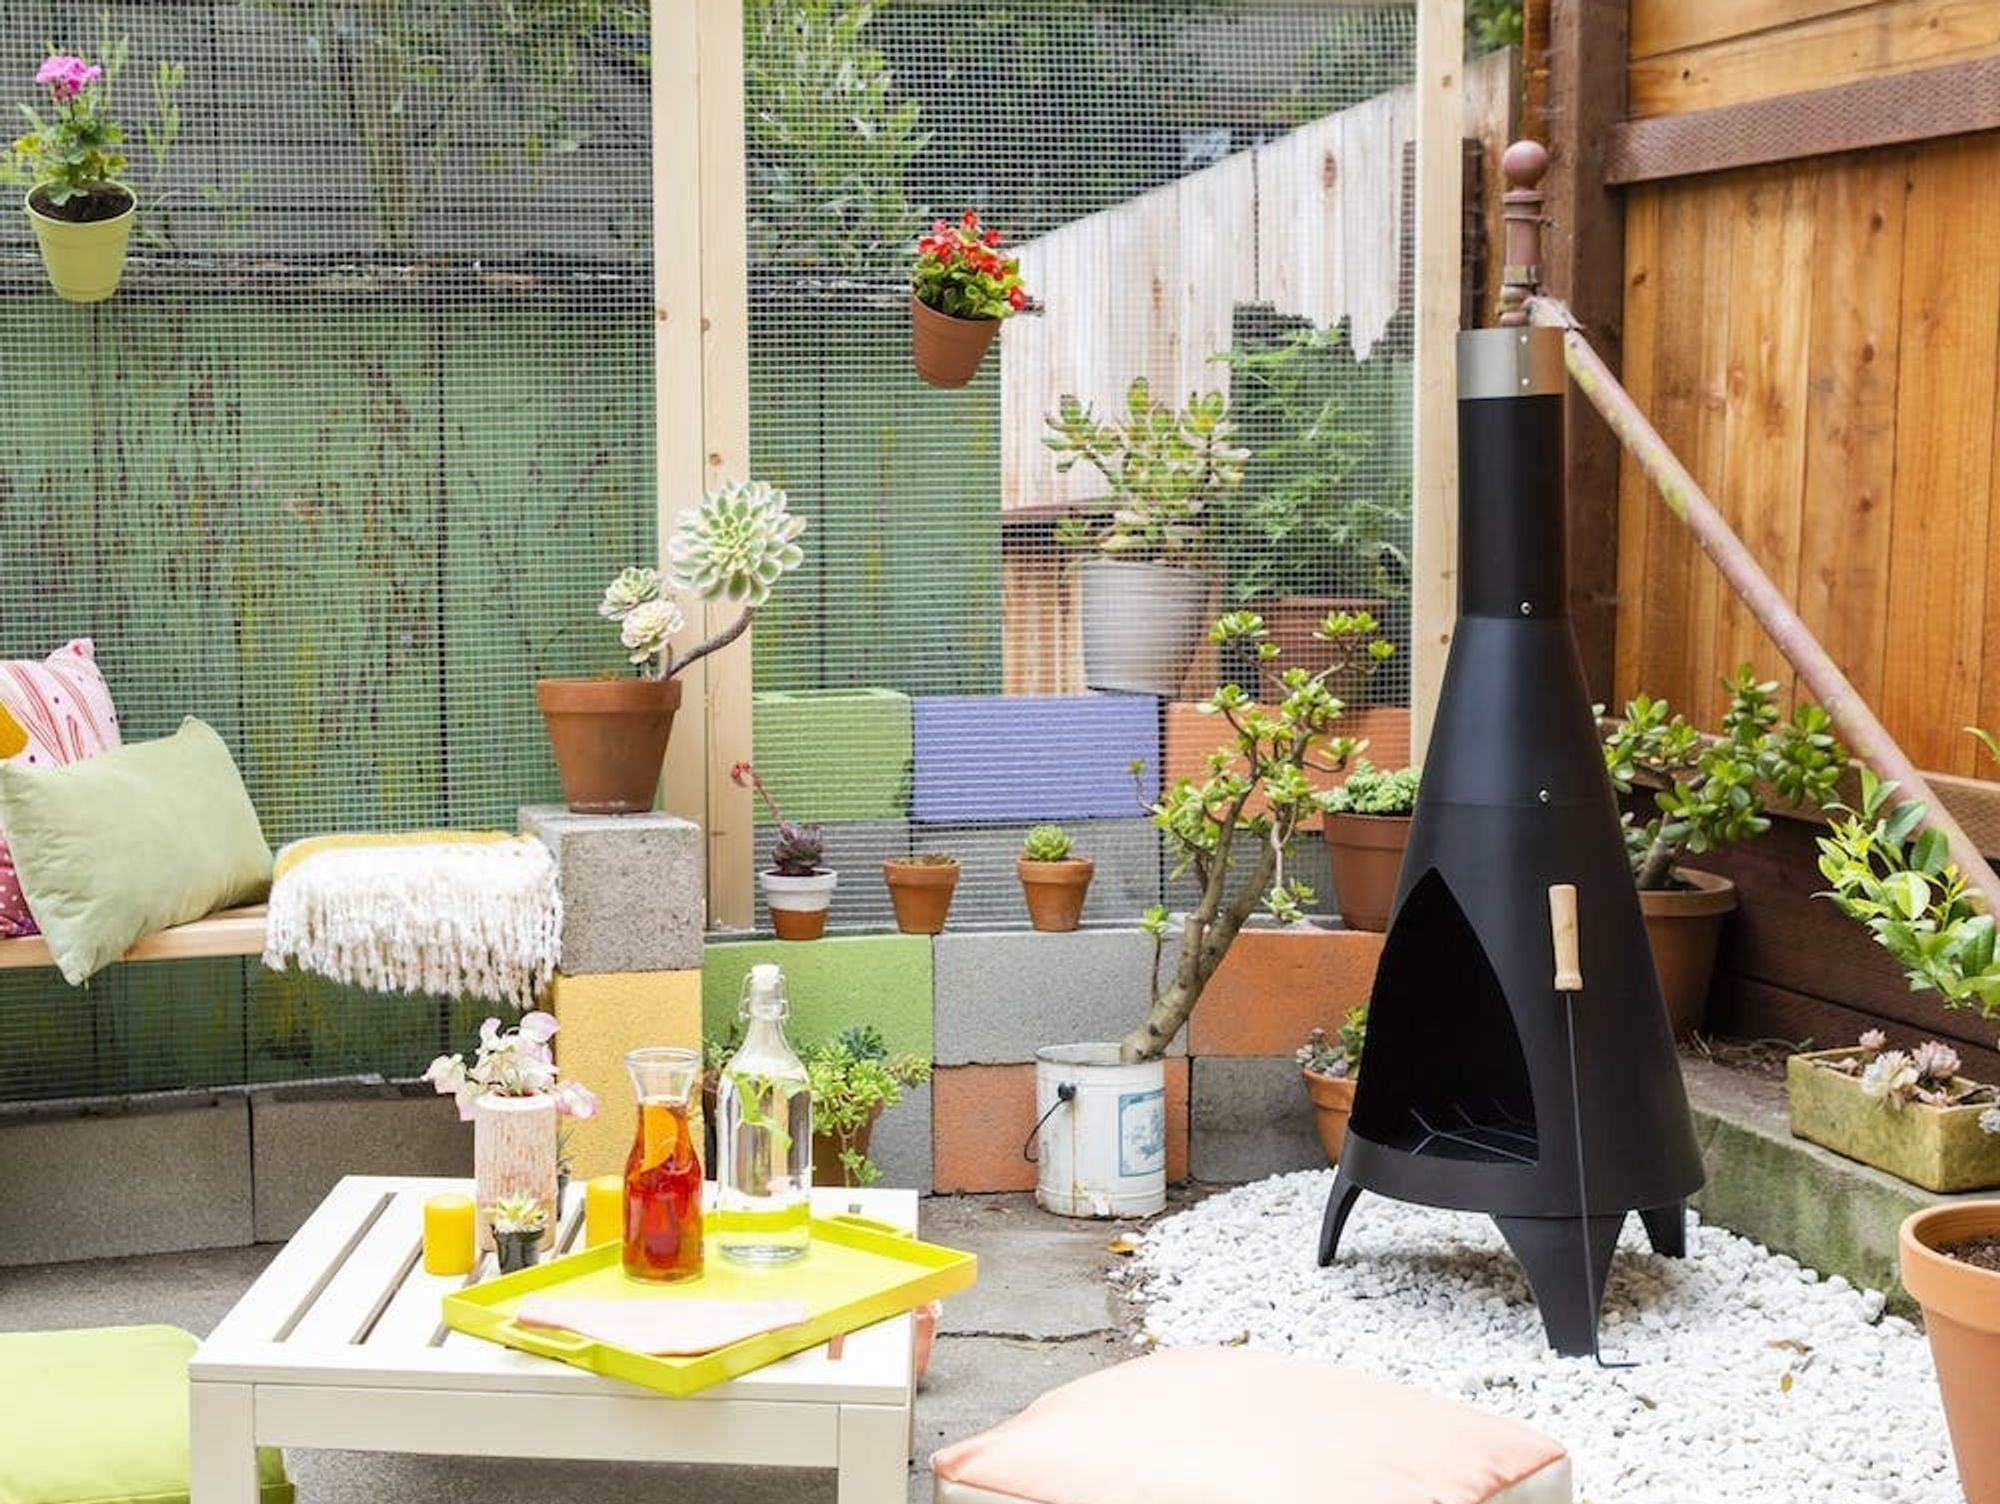 This Tiny Yard Makeover Is Perfect for Outdoor Entertaining